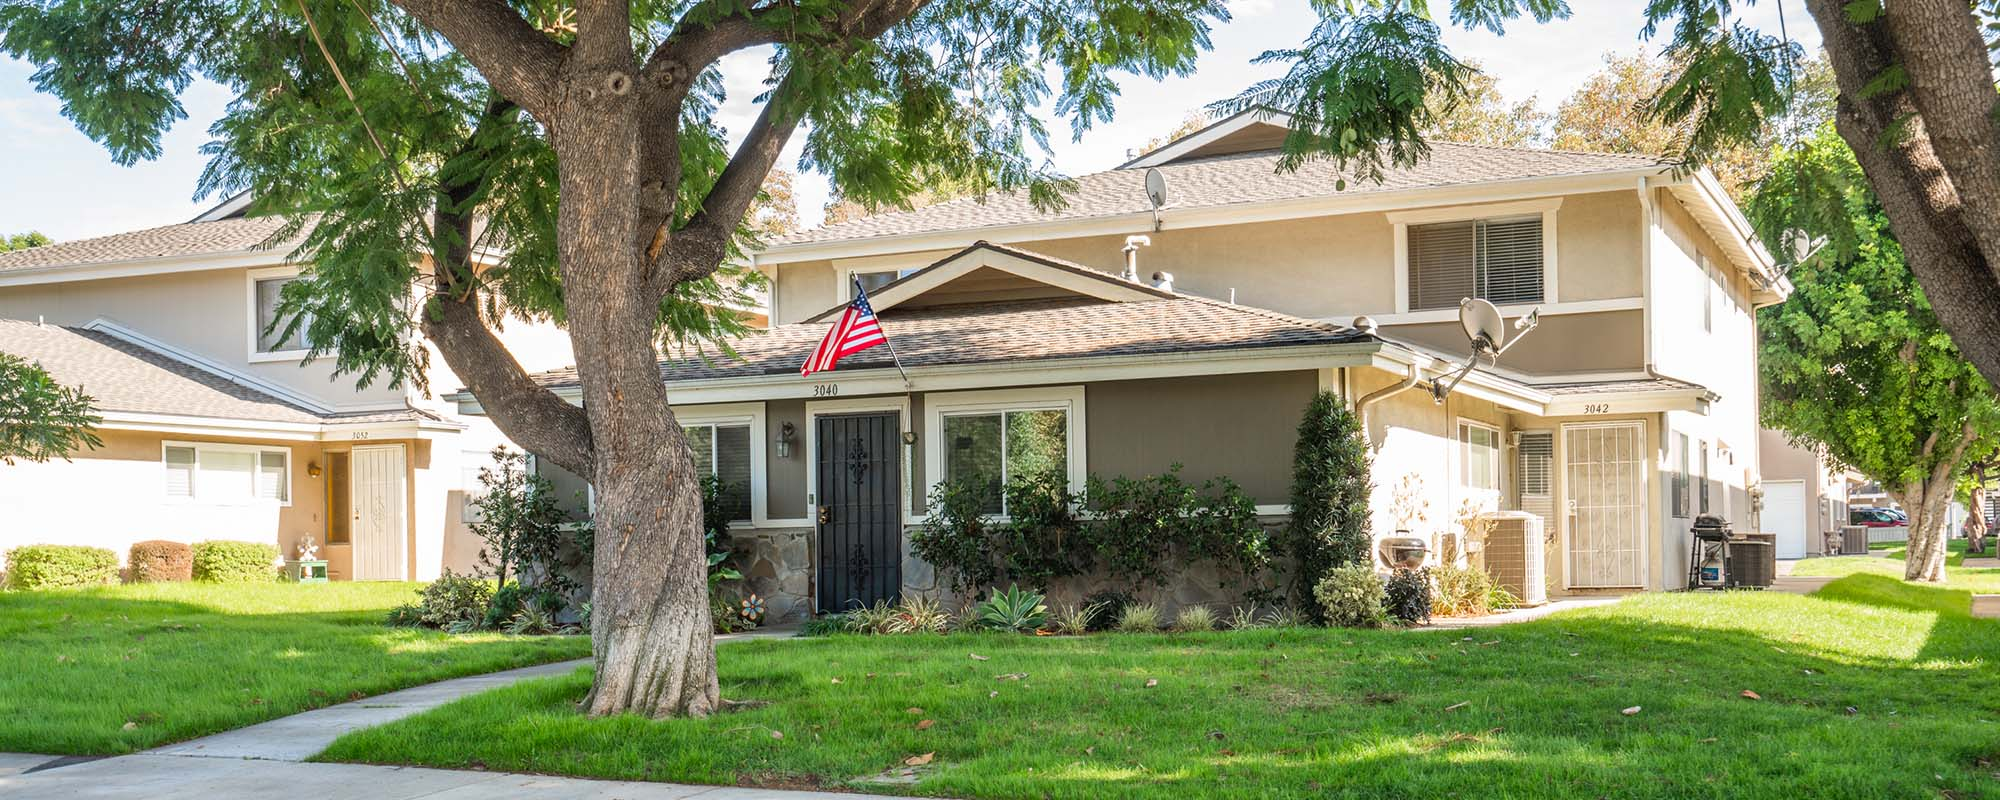 3040 Winfield Avenue La Verne, CA 91750